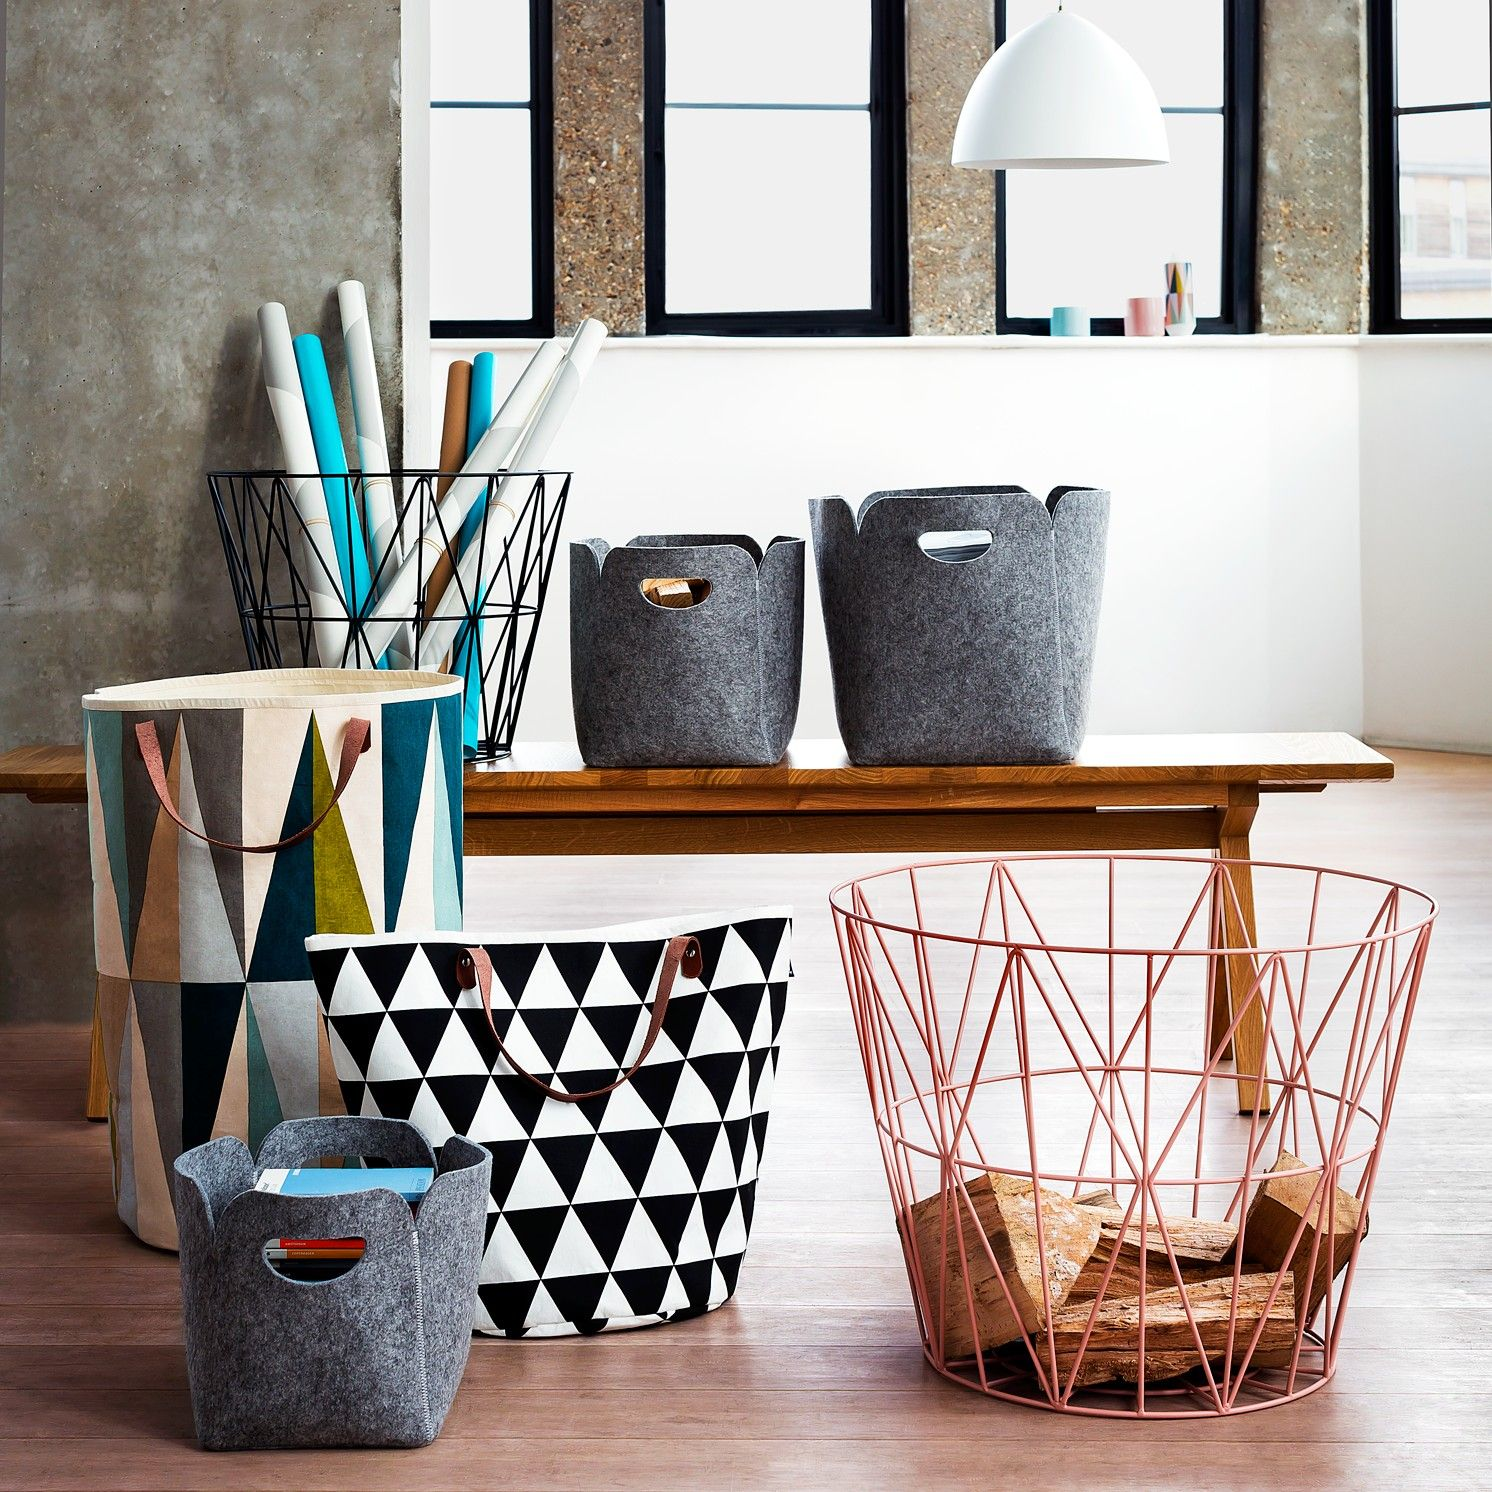 Ferm Living Couchtisch Ferm Living Wire Basket Ferm Living With Ferm Living Wire Basket